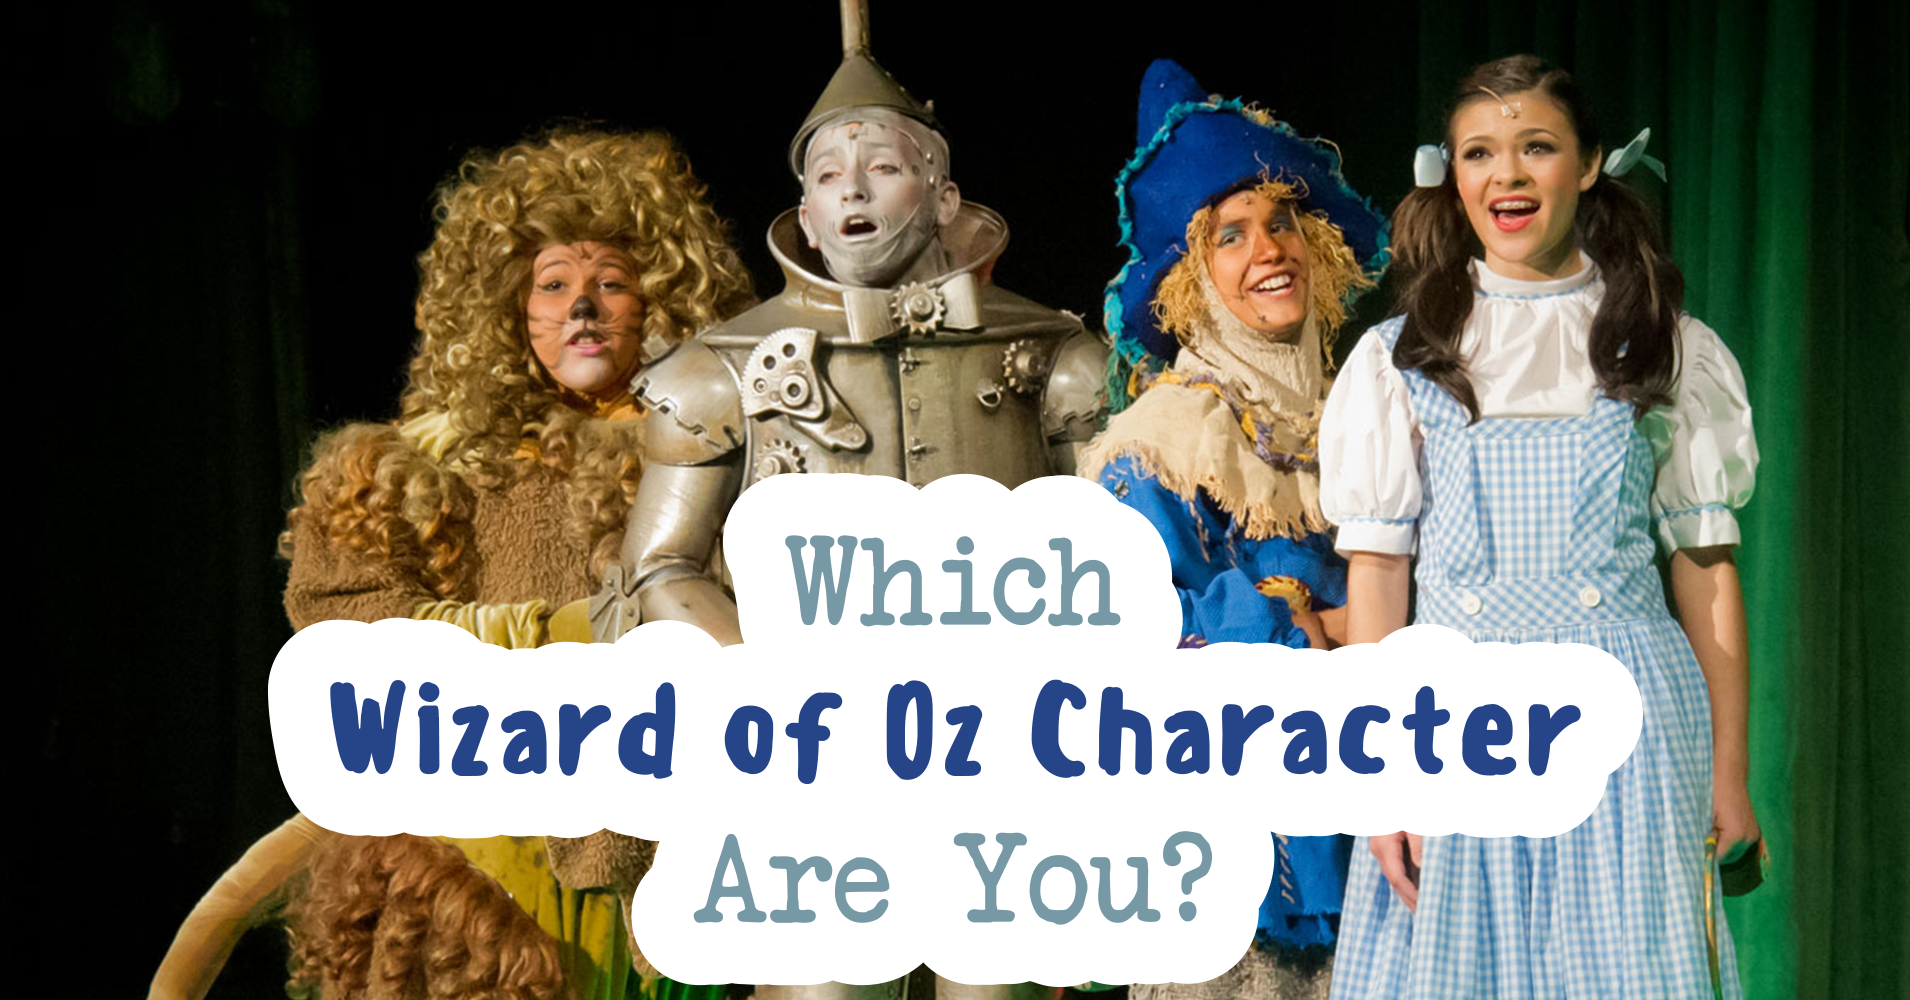 Wizard Of Oz Characters